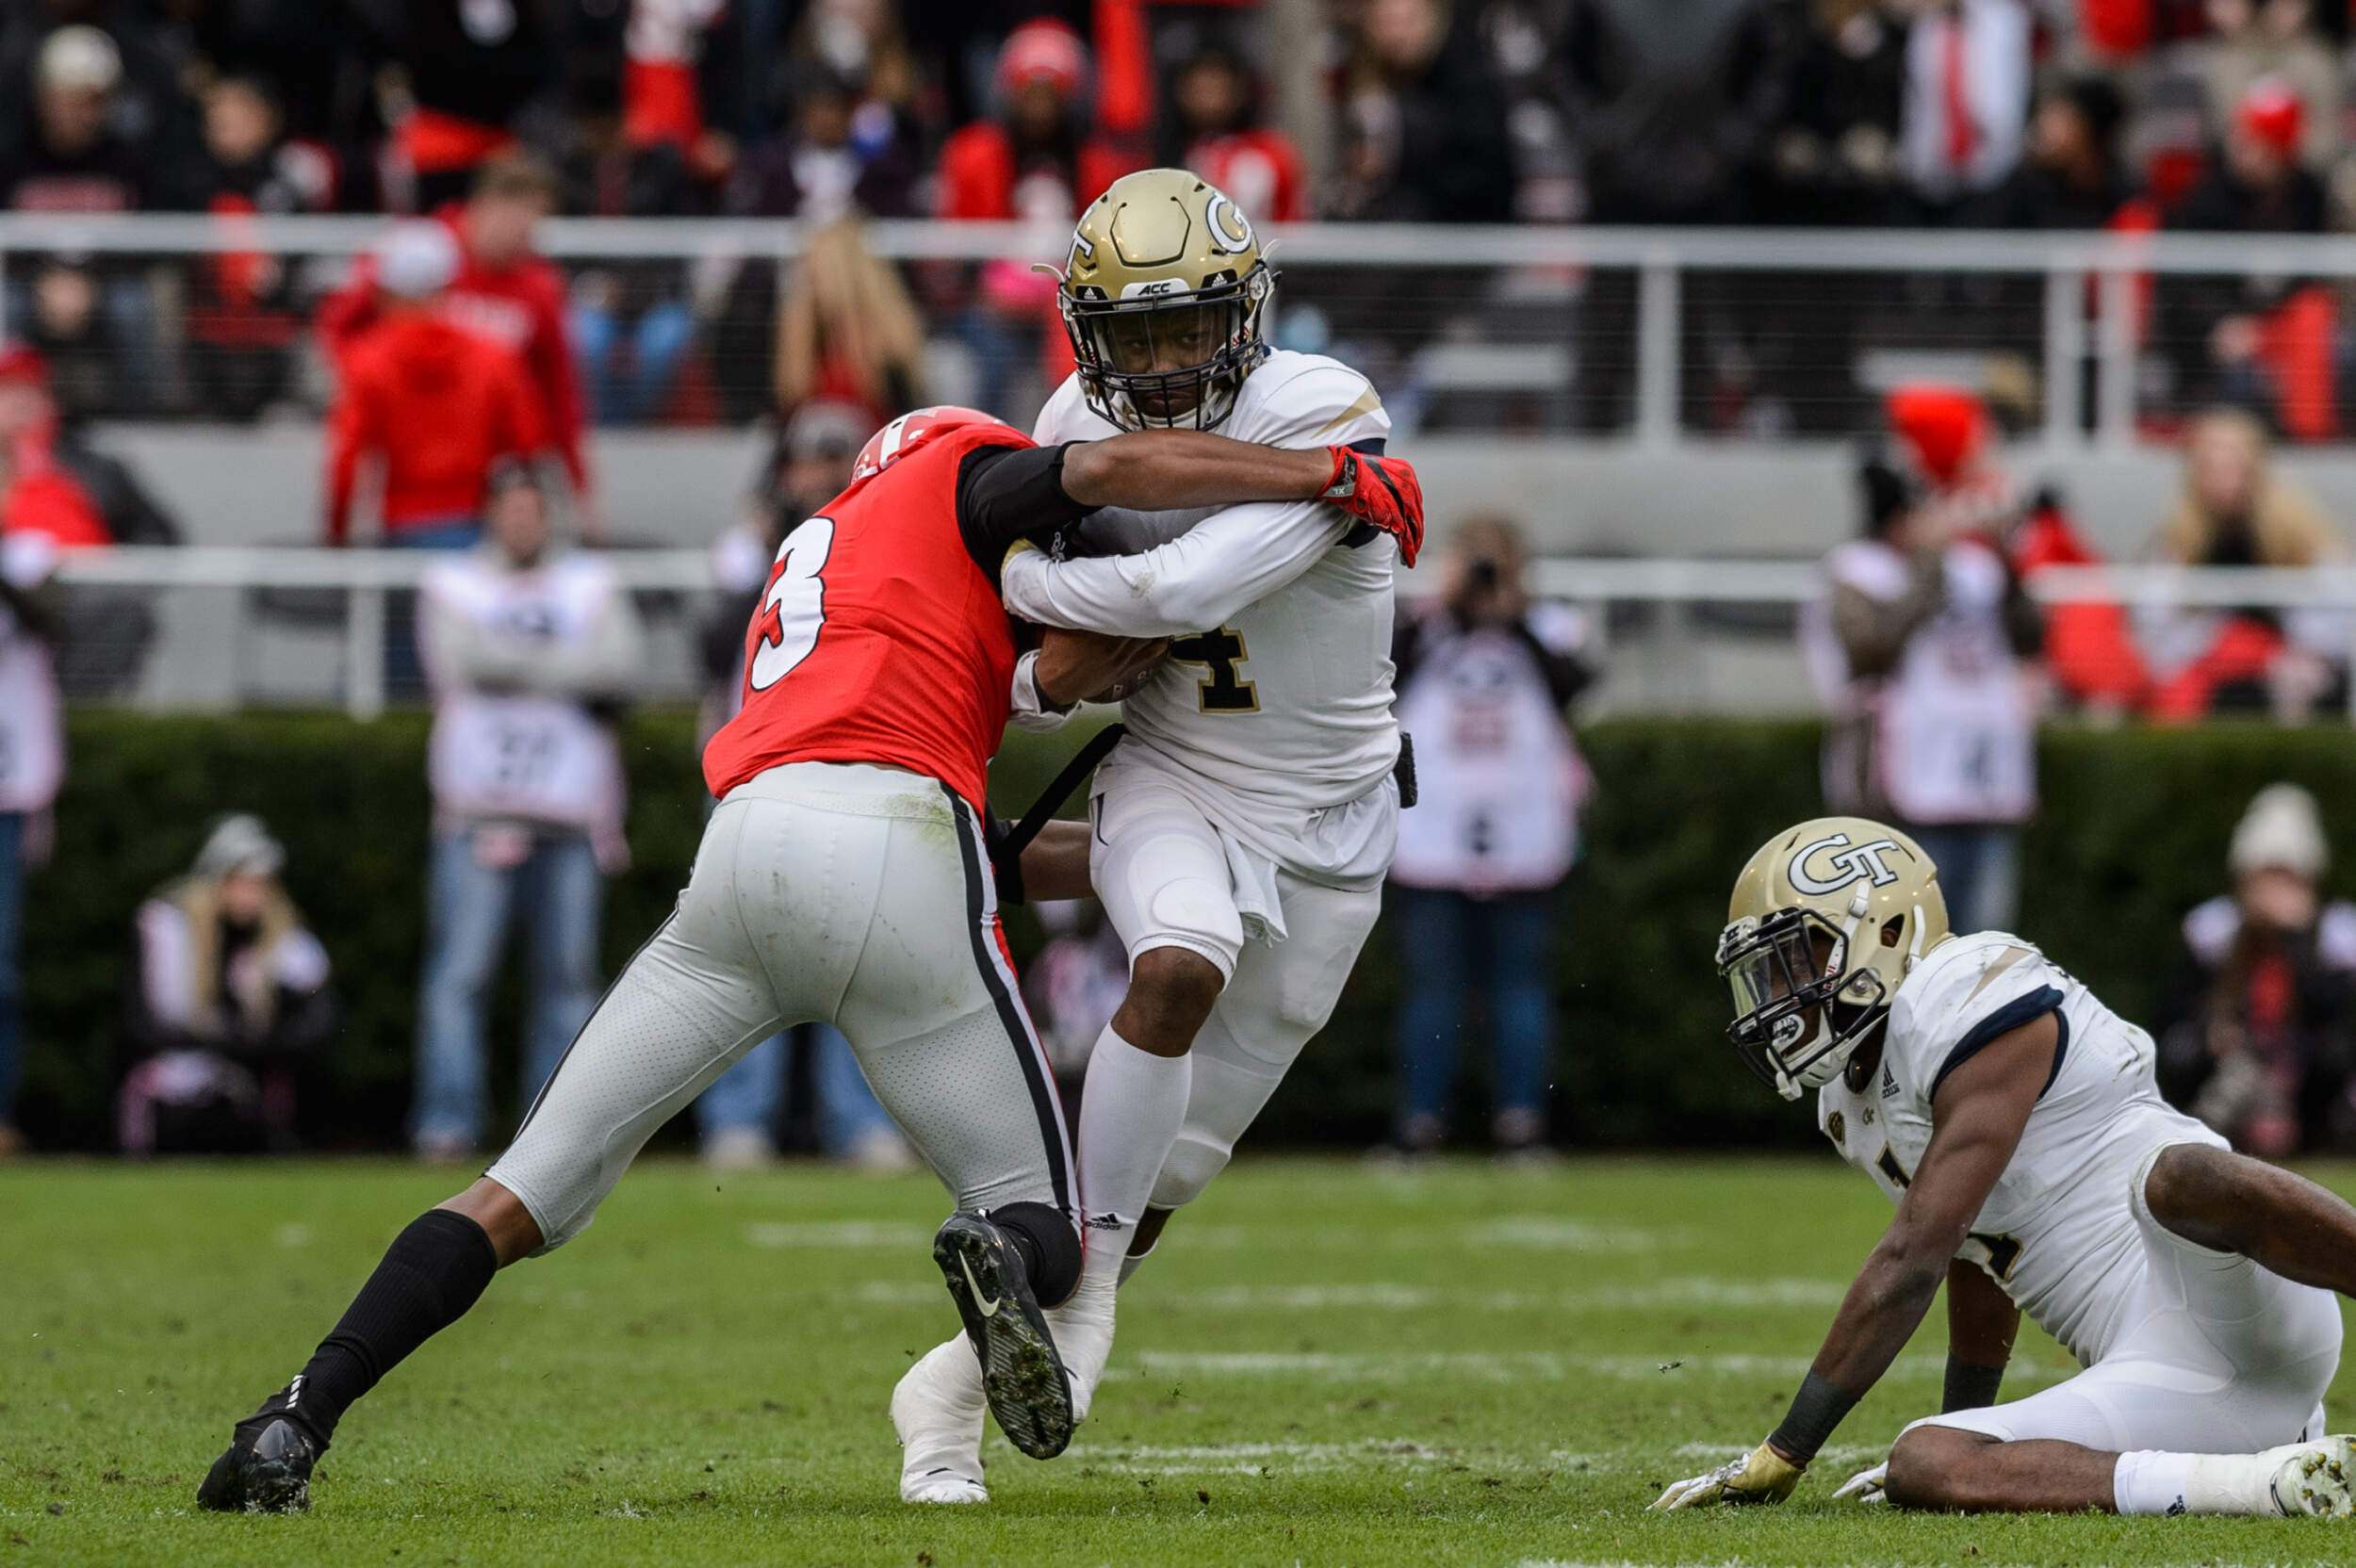 Georgia's George Pickens ejected for fighting vs. Georgia Tech